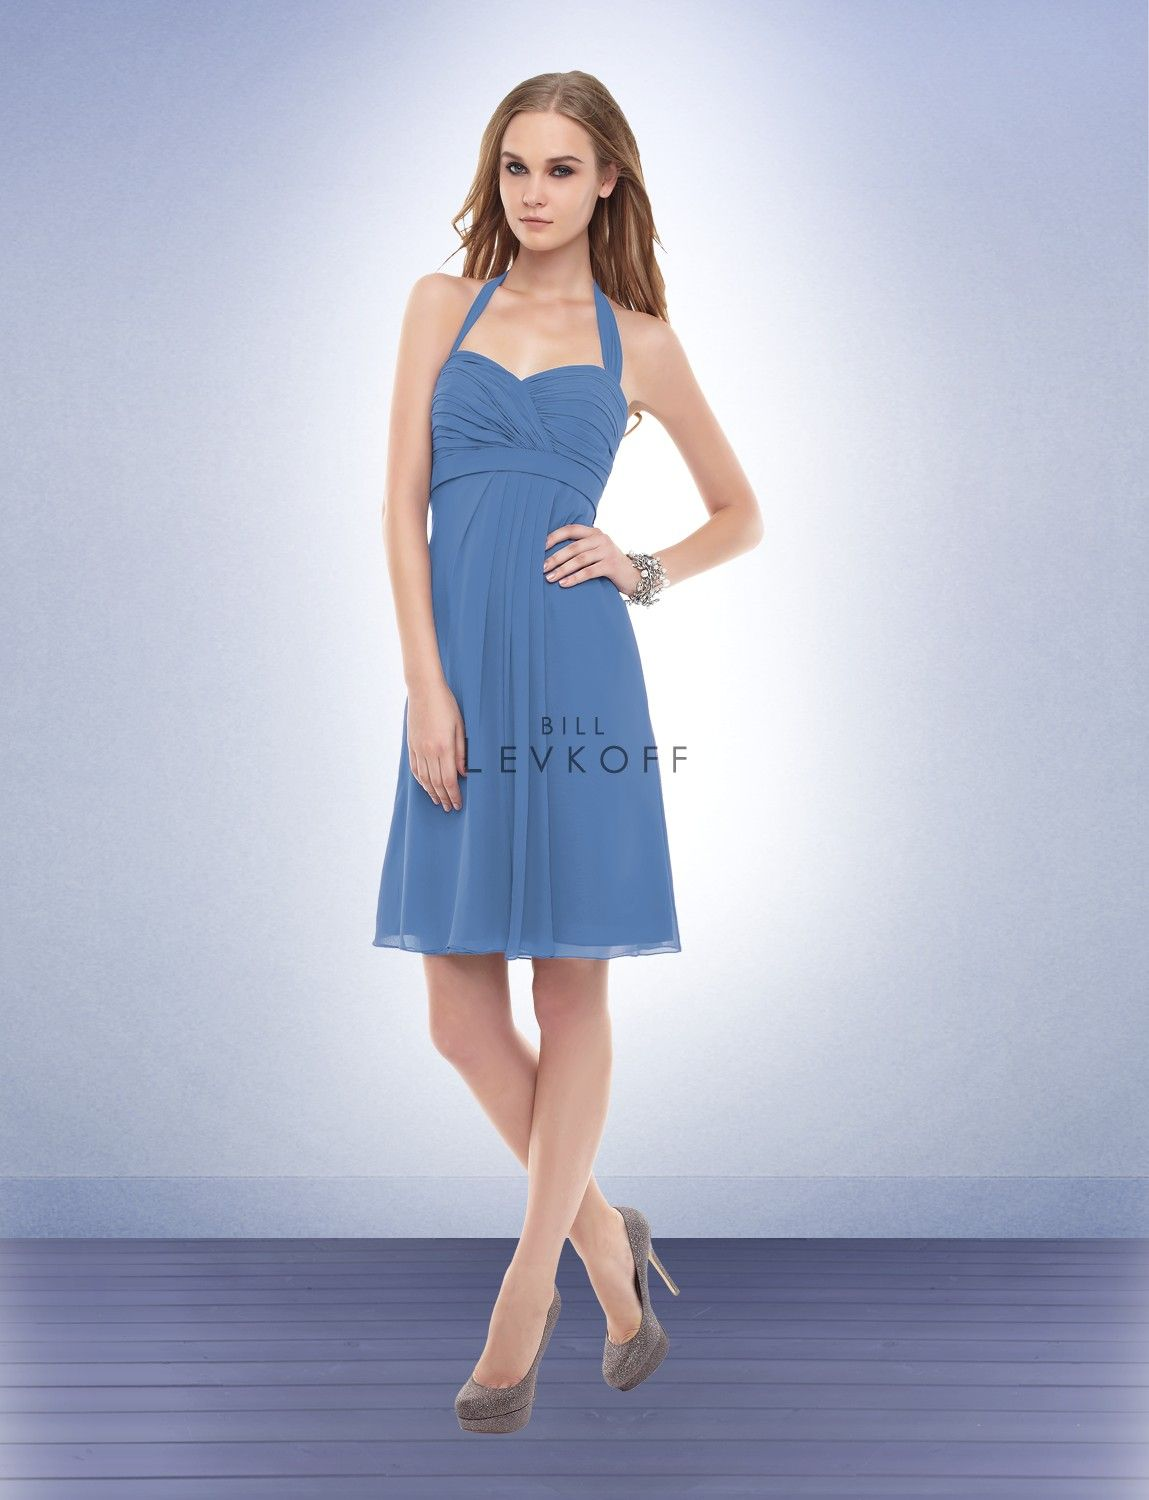 Levkoff cornflower bridesmaid dress style 153 bridesmaid dresses levkoff cornflower bridesmaid dress style 153 bridesmaid dresses by bill levkoff ombrellifo Image collections